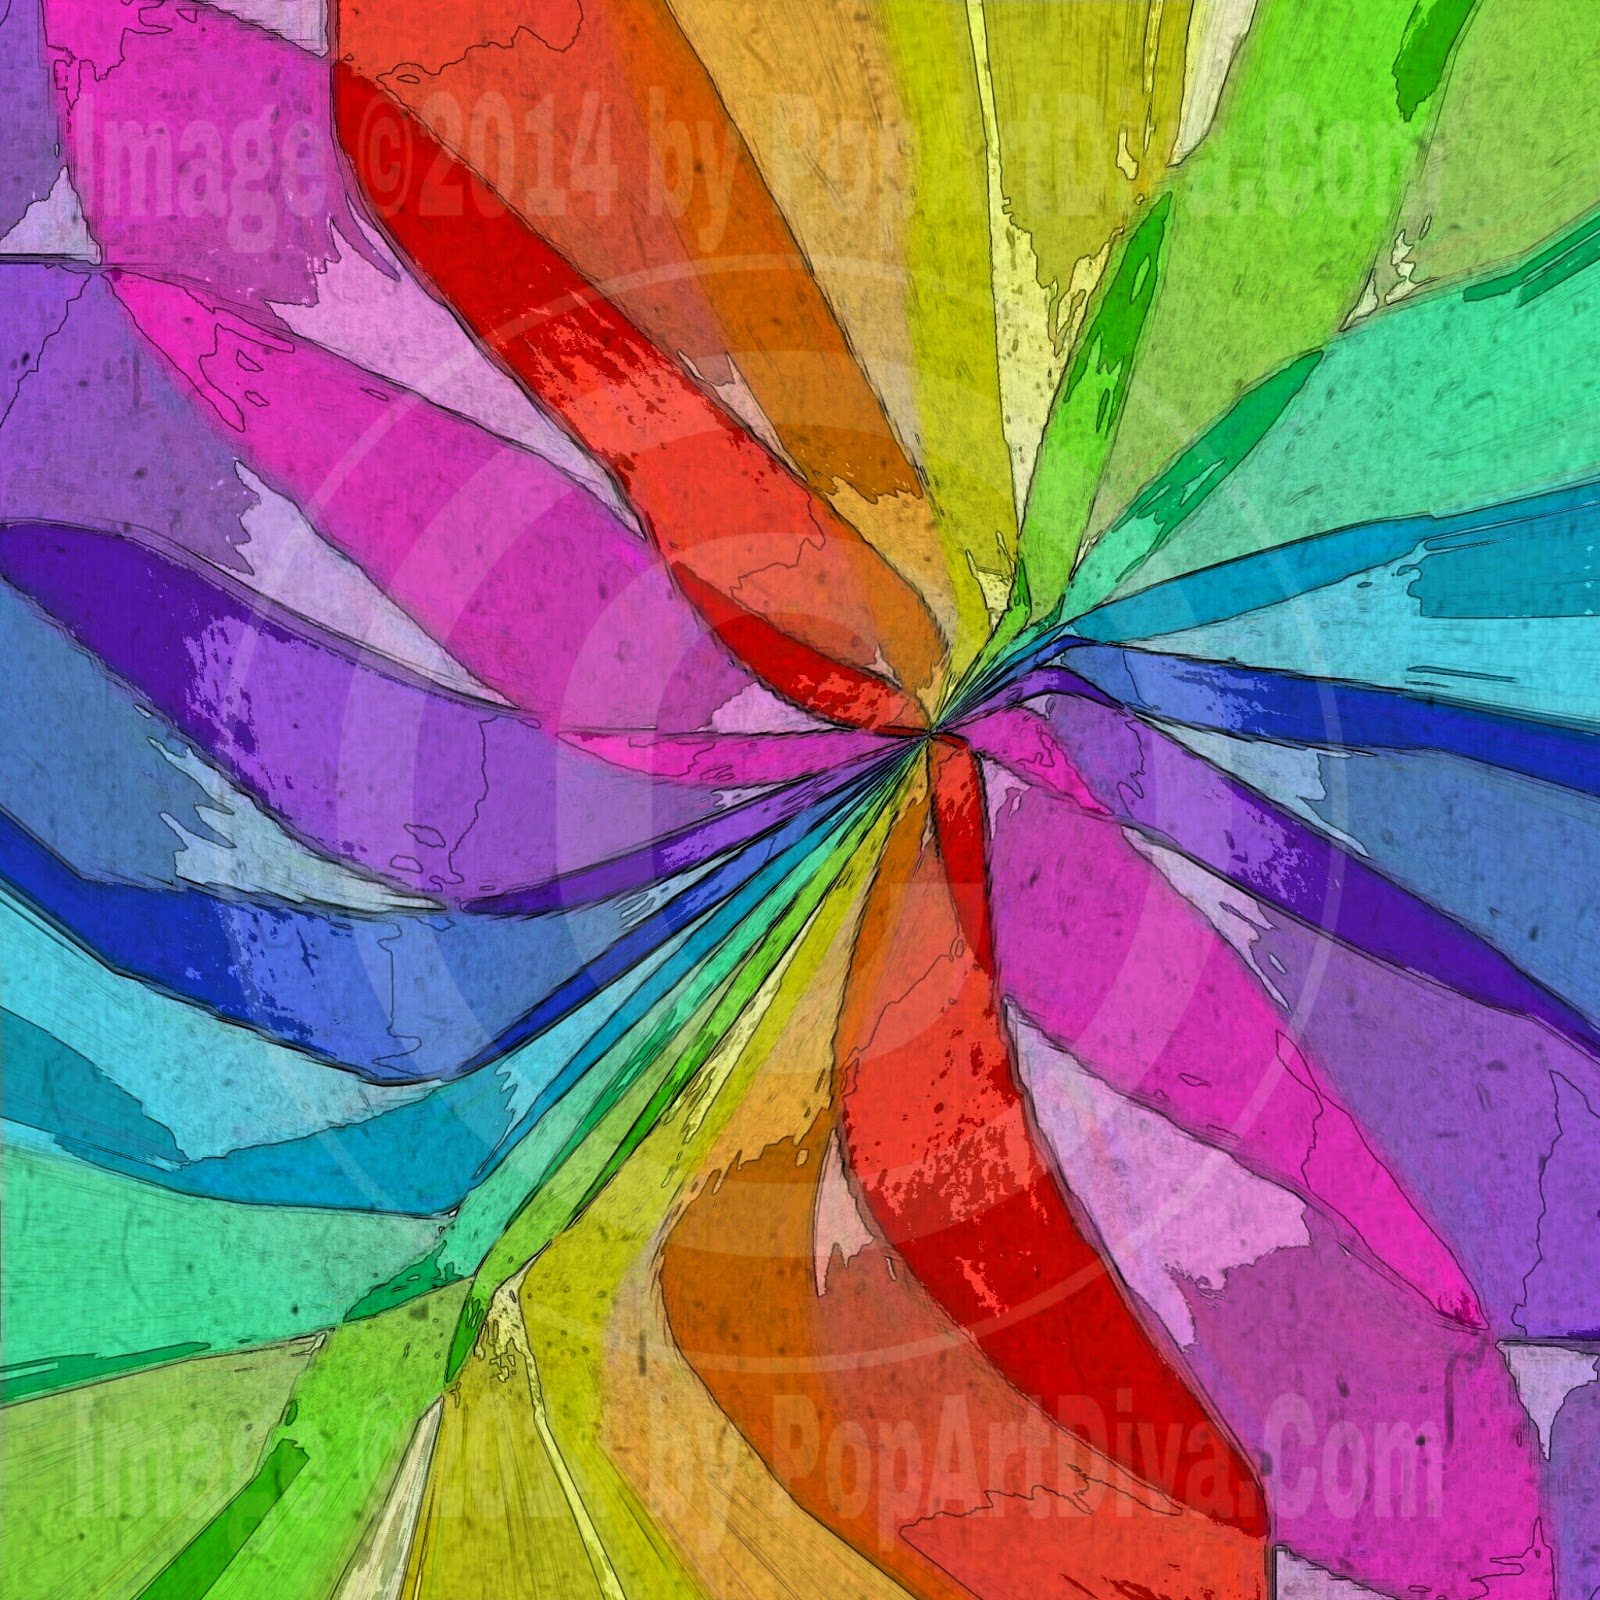 http://store.payloadz.com/details/2084279-photos-and-images-backgrounds-kaleidoscope-abstract-web-graphic.html